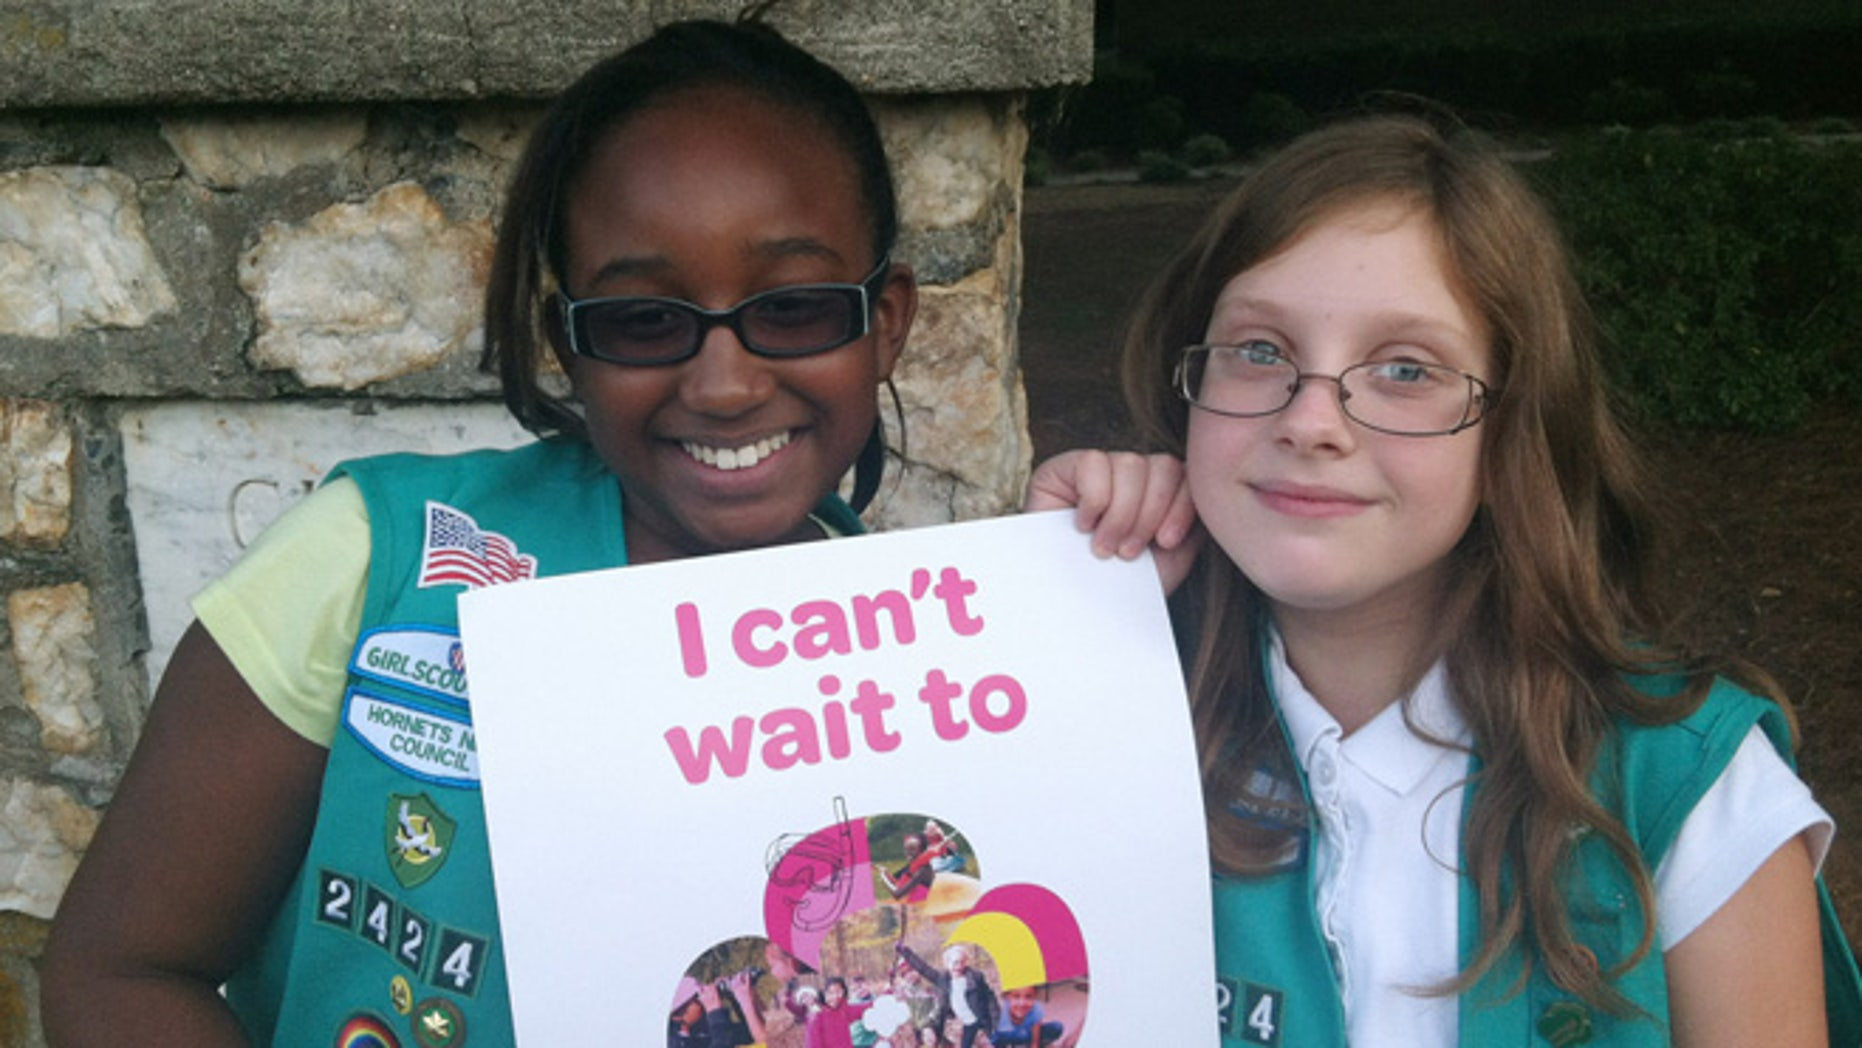 Sept. 27, 2013: In this photo provided by the Girl Scouts, Natalie Harrison, left, and Jasmine Barnett of Troop 2424 hold a promotional poster for their organization outside of Matthews Elementary School in Charlotte, N.C. The fifth graders were volunteering at a Girl Scout Informational night at the school to share their stories about their experiences in the group. Instead of placing ads on TV, in newspapers and on billboards, a decentralized campaign aimed at reversing a long-running decline in participation in the Girl Scouts will unfold in neighborhood initiatives and on social media as local councils directly target elementary school girls - even kindergartners - with promises of adventuresome fun.